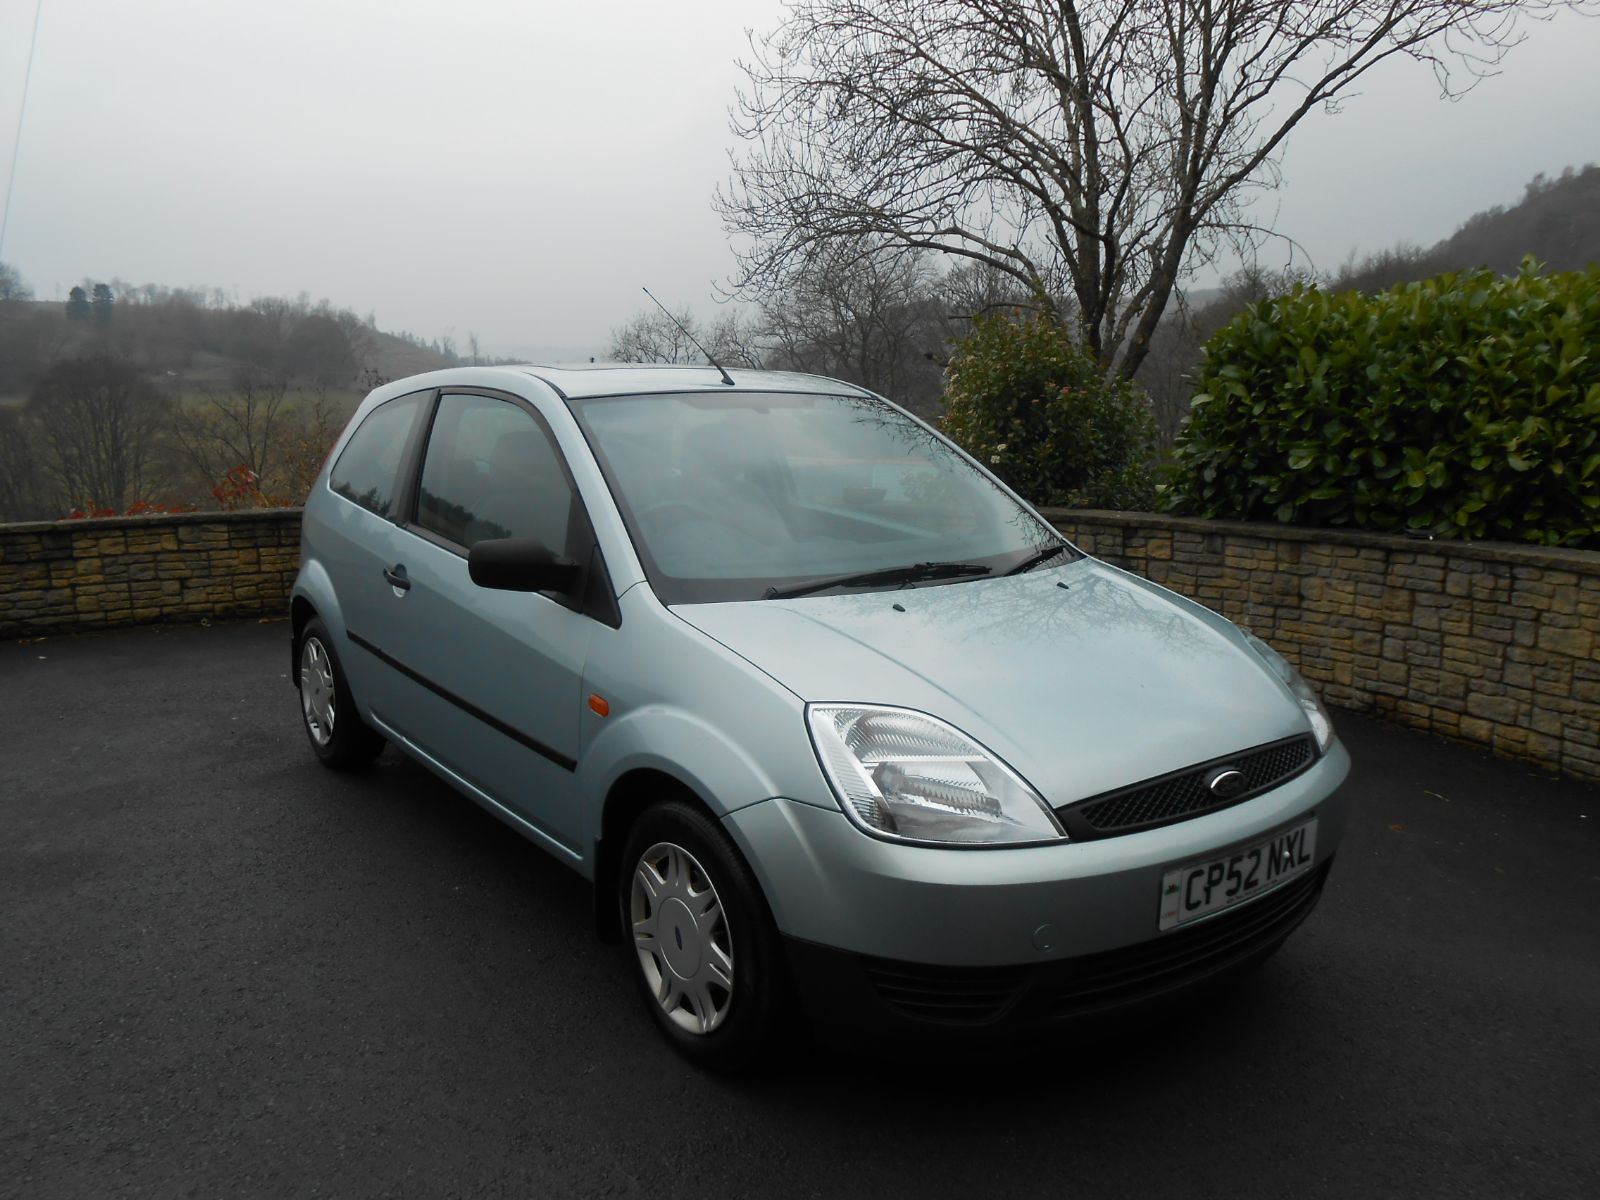 Personal Contract Hire >> Ford Fiesta 1.3 Finesse 3 Door car for sale Llanidloes Powys Mid Wales Kevin Jones Cars - Used ...